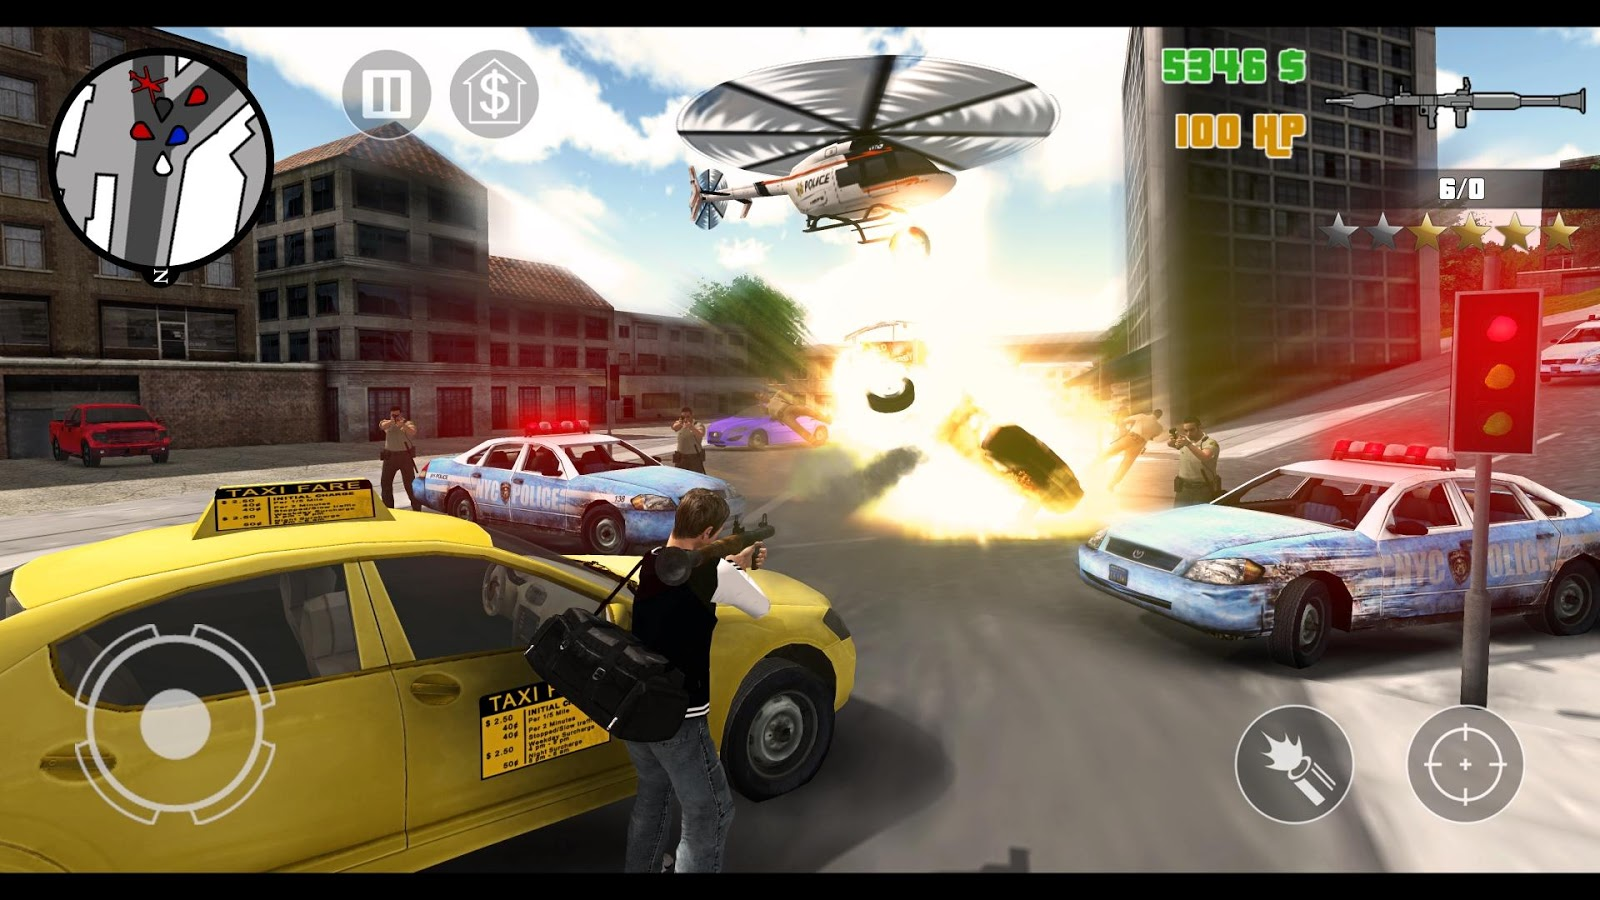 Grand theft auto san andreas v1. 07 mod apk + data download youtube.